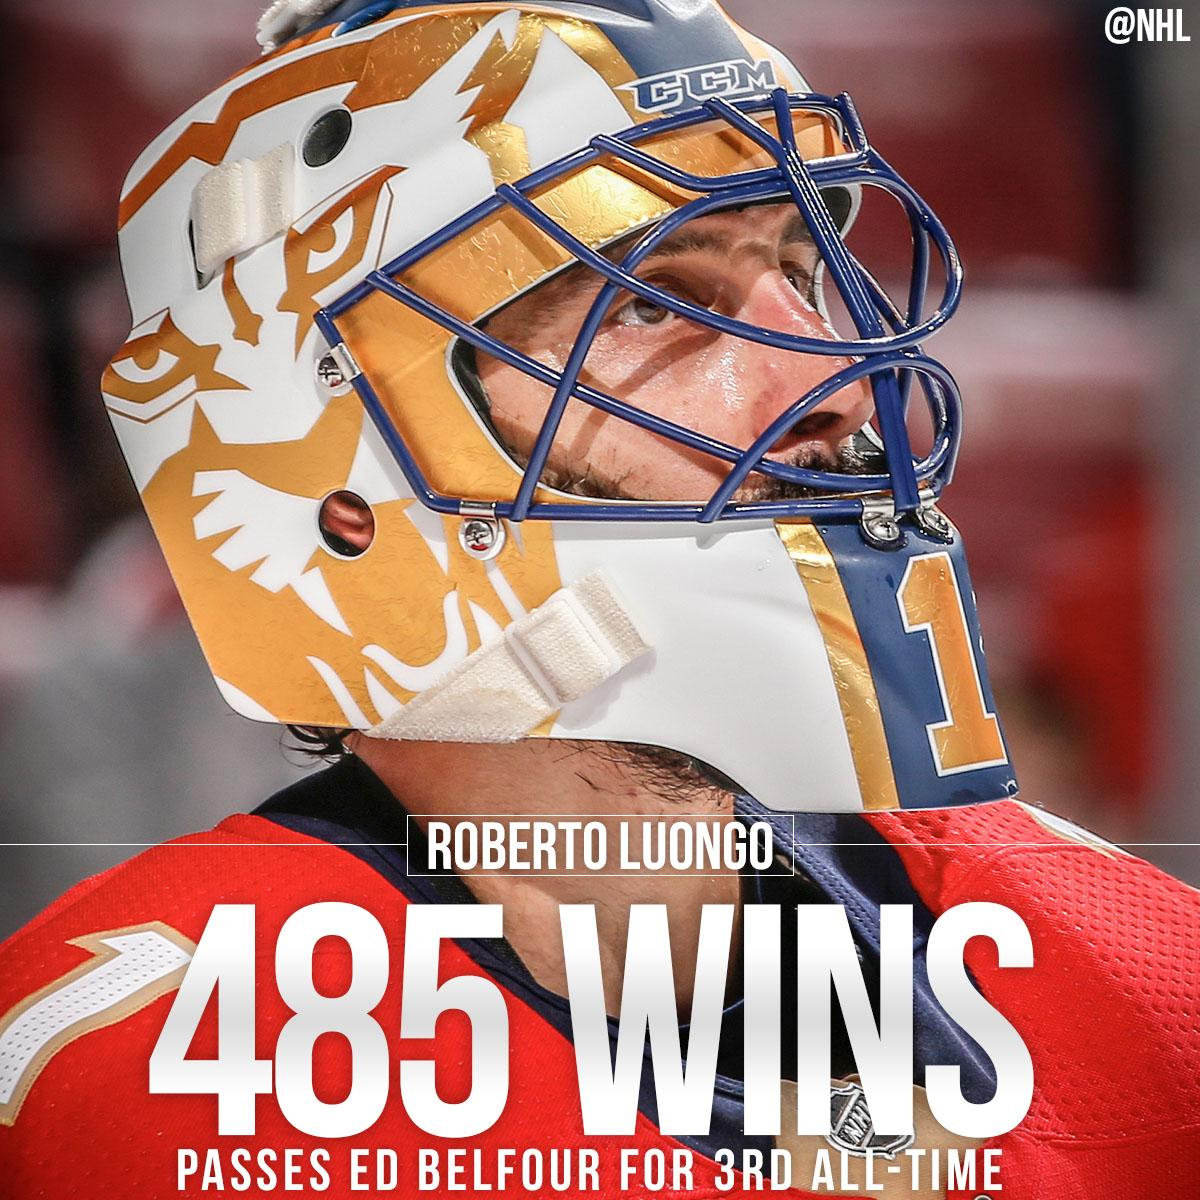 Nhl On Twitter 485 Wins For Strombone1 No 3 All Time